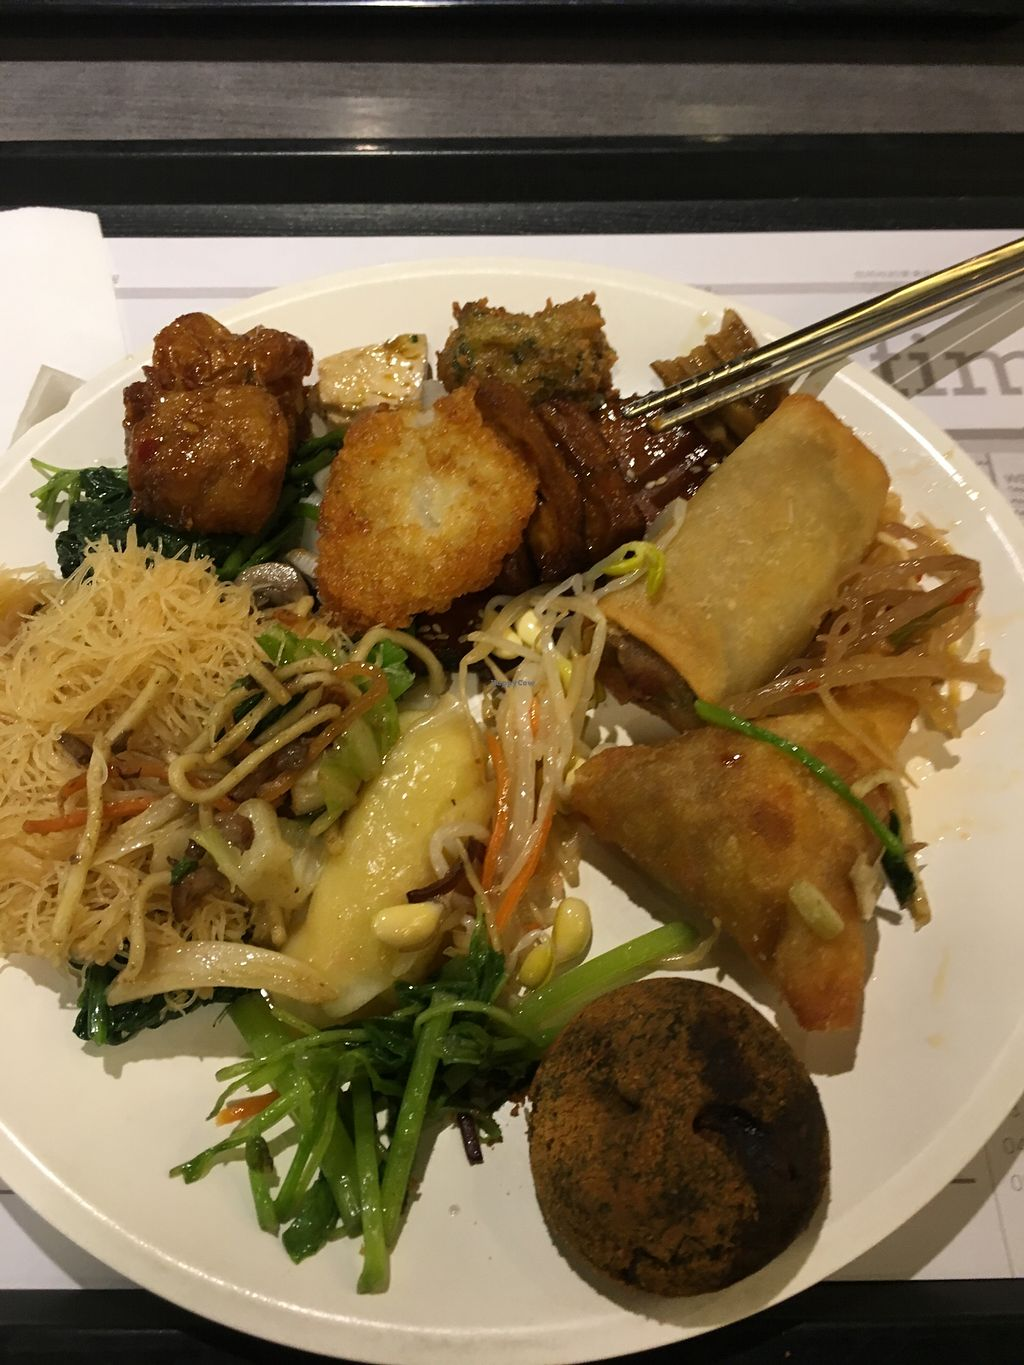 """Photo of Minder Vegetarian - Q Square Mall  by <a href=""""/members/profile/livcamp"""">livcamp</a> <br/>This food looks okay - but it wasn't  <br/> November 25, 2017  - <a href='/contact/abuse/image/29036/328996'>Report</a>"""